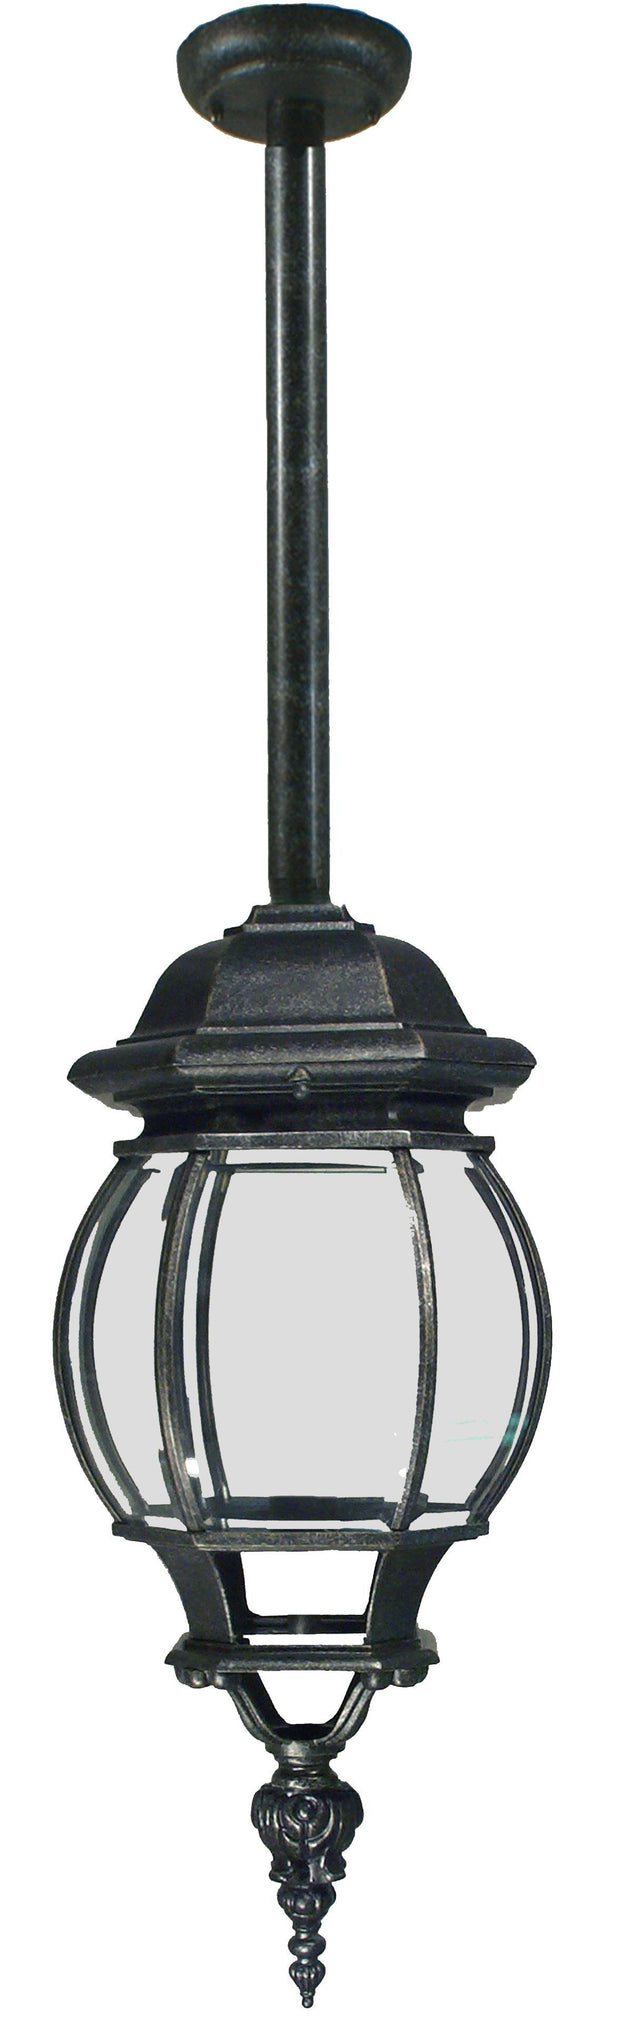 Flinders Exterior Rod Pendant - Antique Black